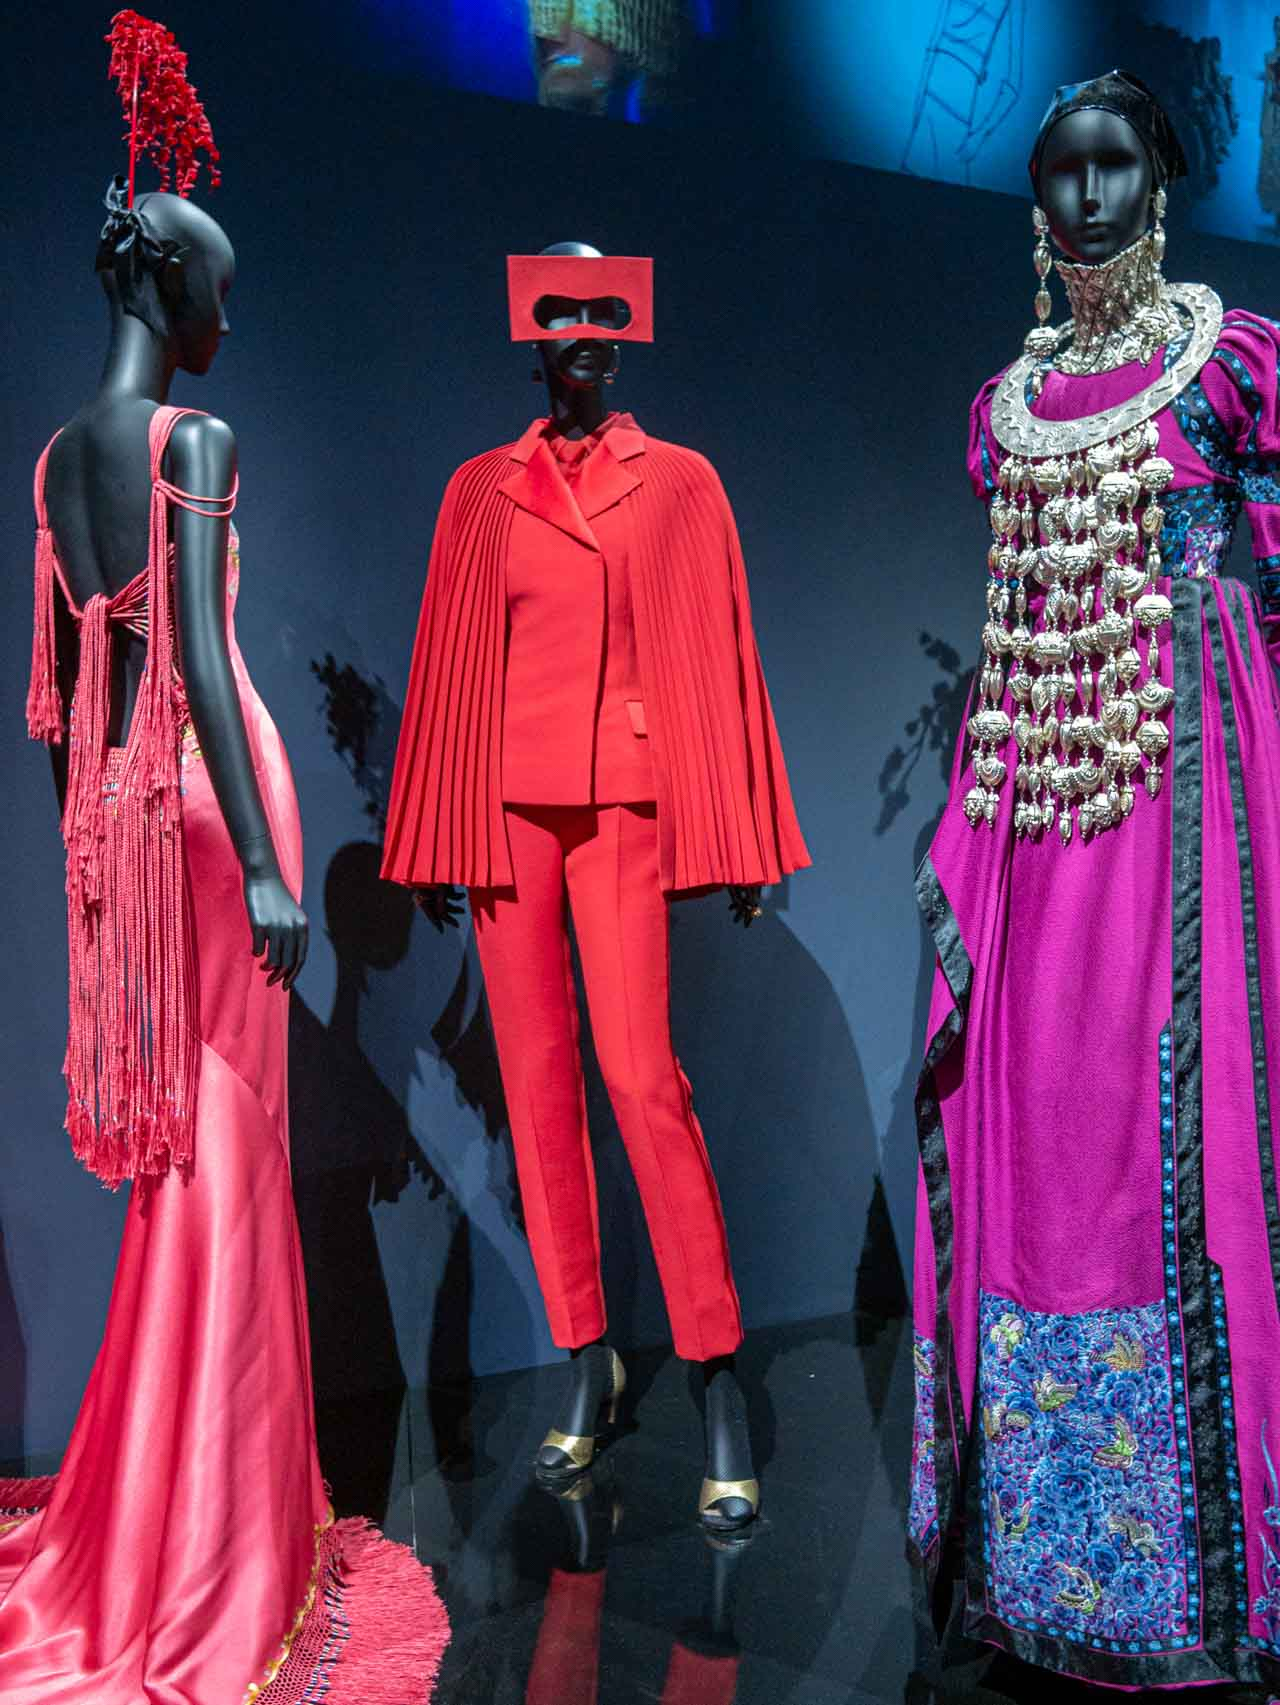 Red Amour Soleil ensemble designed by Maria Grazia Chiuri for Christian Dior, Haute Couture, Spring-Summer 2018. Taken at the V&A exhibition © The Cutting Class, 2019.